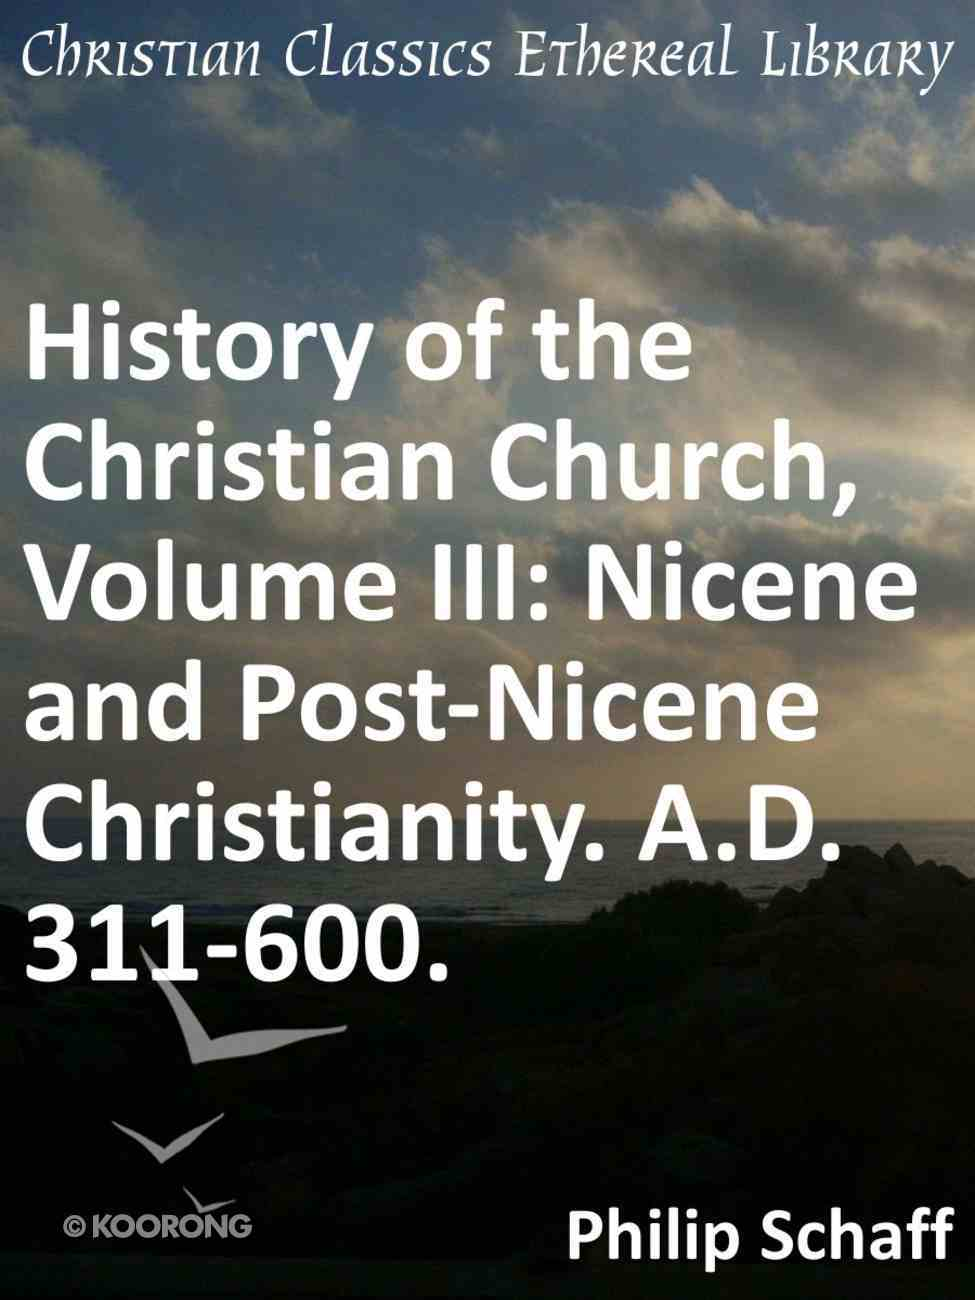 Nicene and Post-Nicene Christianity. A.D. 311-600. (#03 in History Of The Christian Church Series) eBook